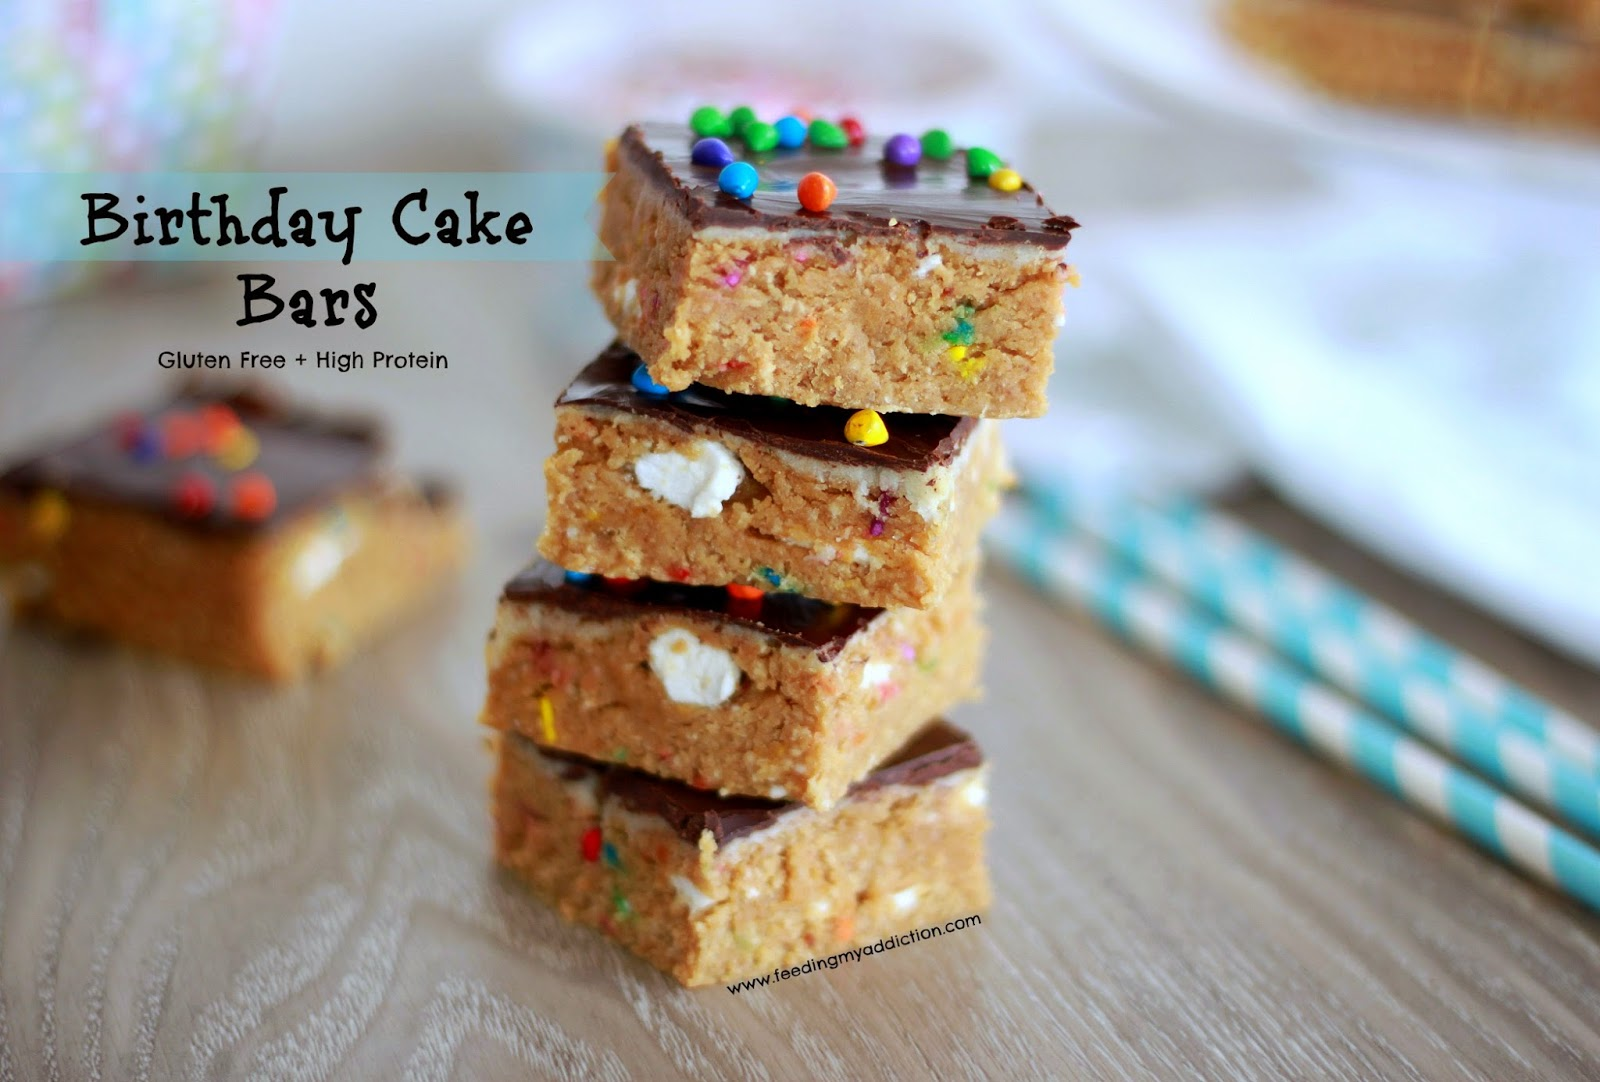 Guilt Free Birthday Cake Bars